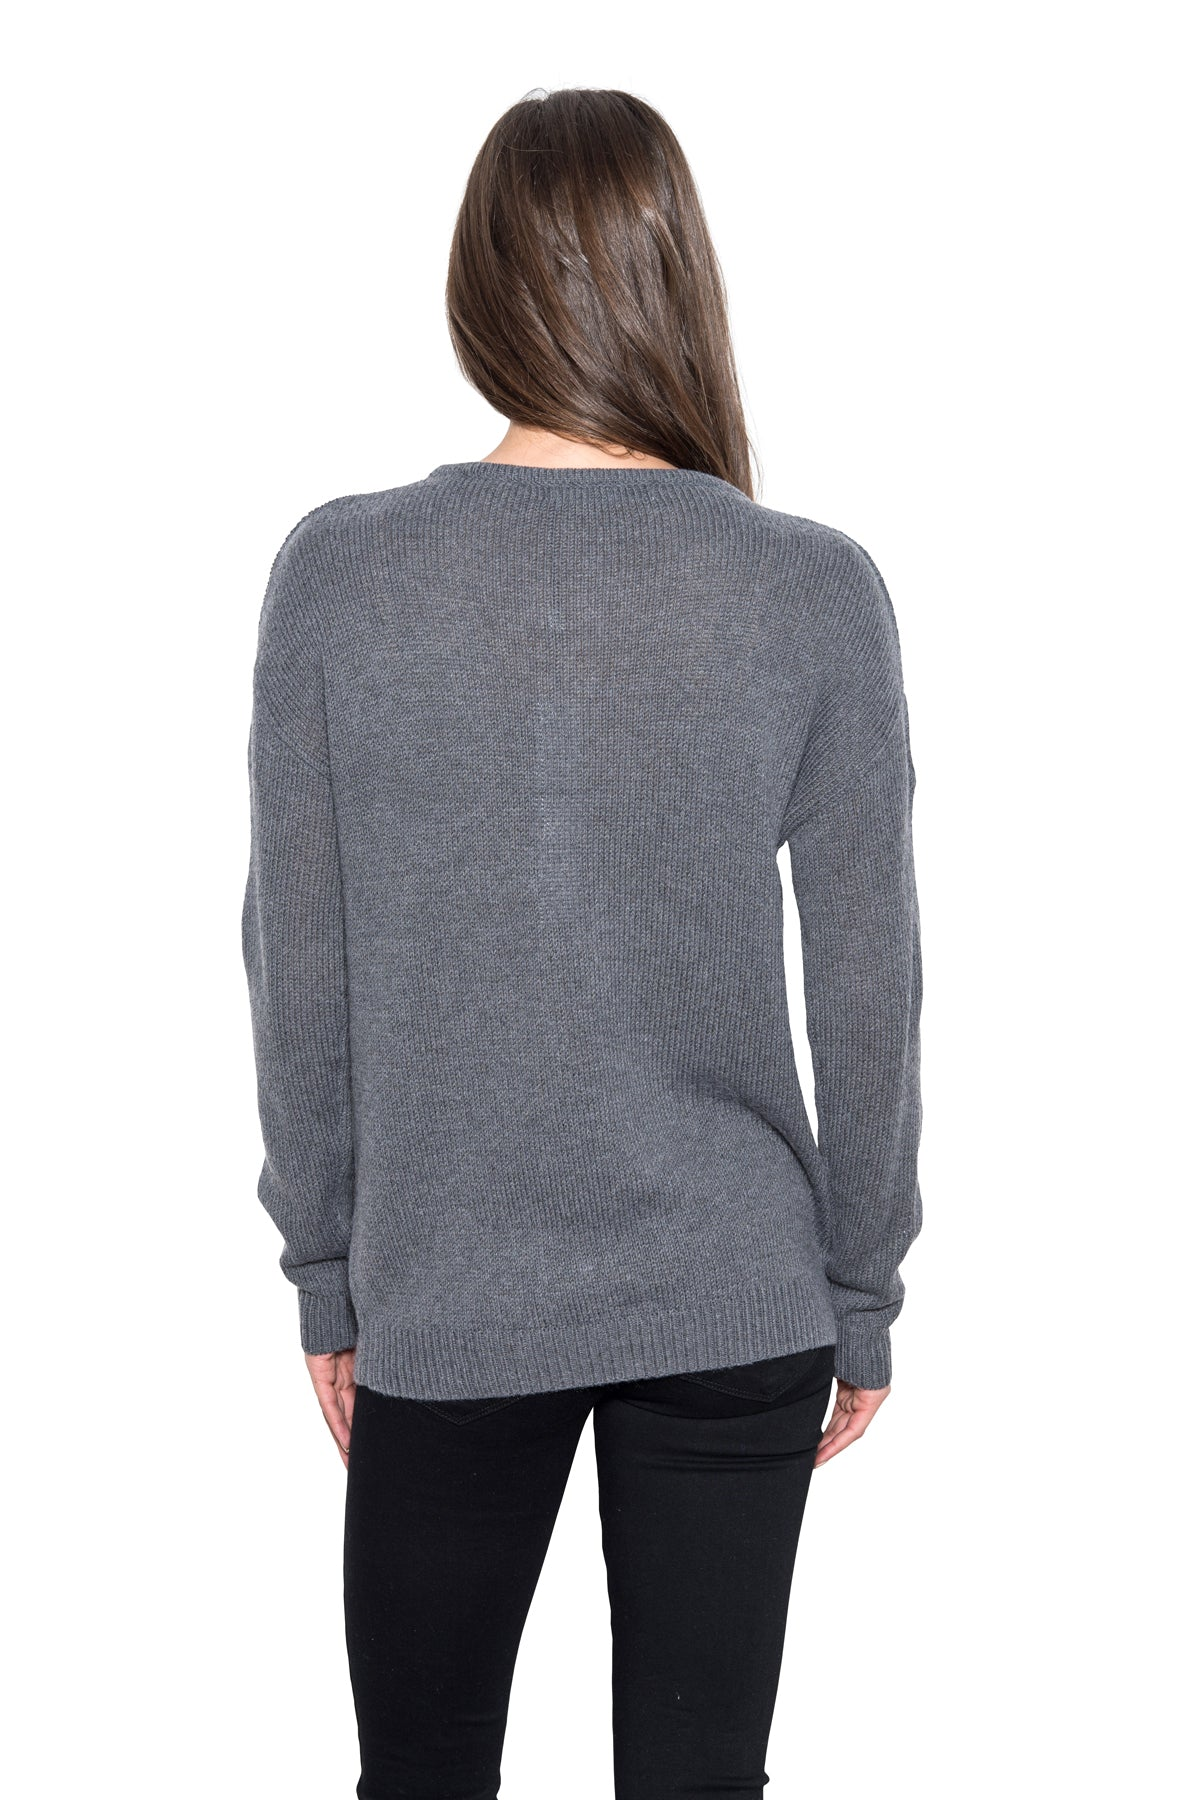 Cameron - Slit Sleeve Pullover [Grey]